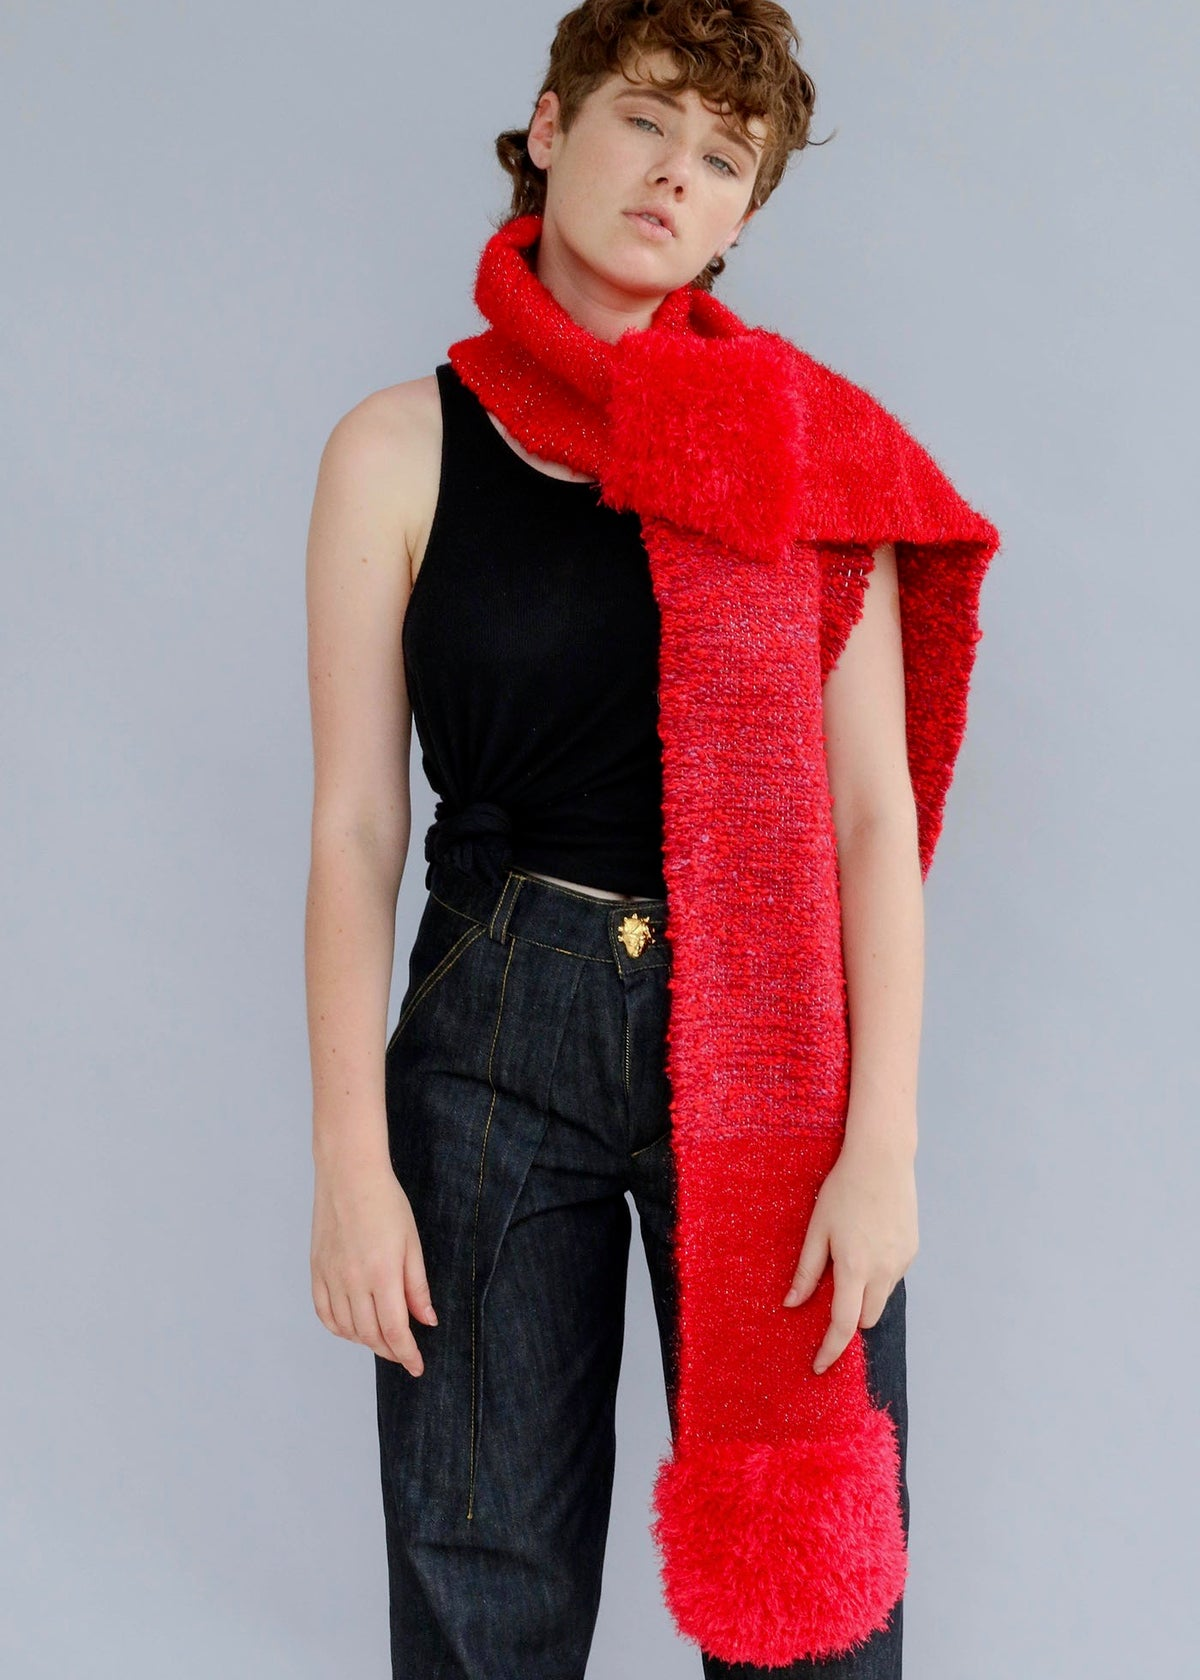 Hand-woven scarf with a multi-textured wool and lurex yarn design from Nicholas Coutts